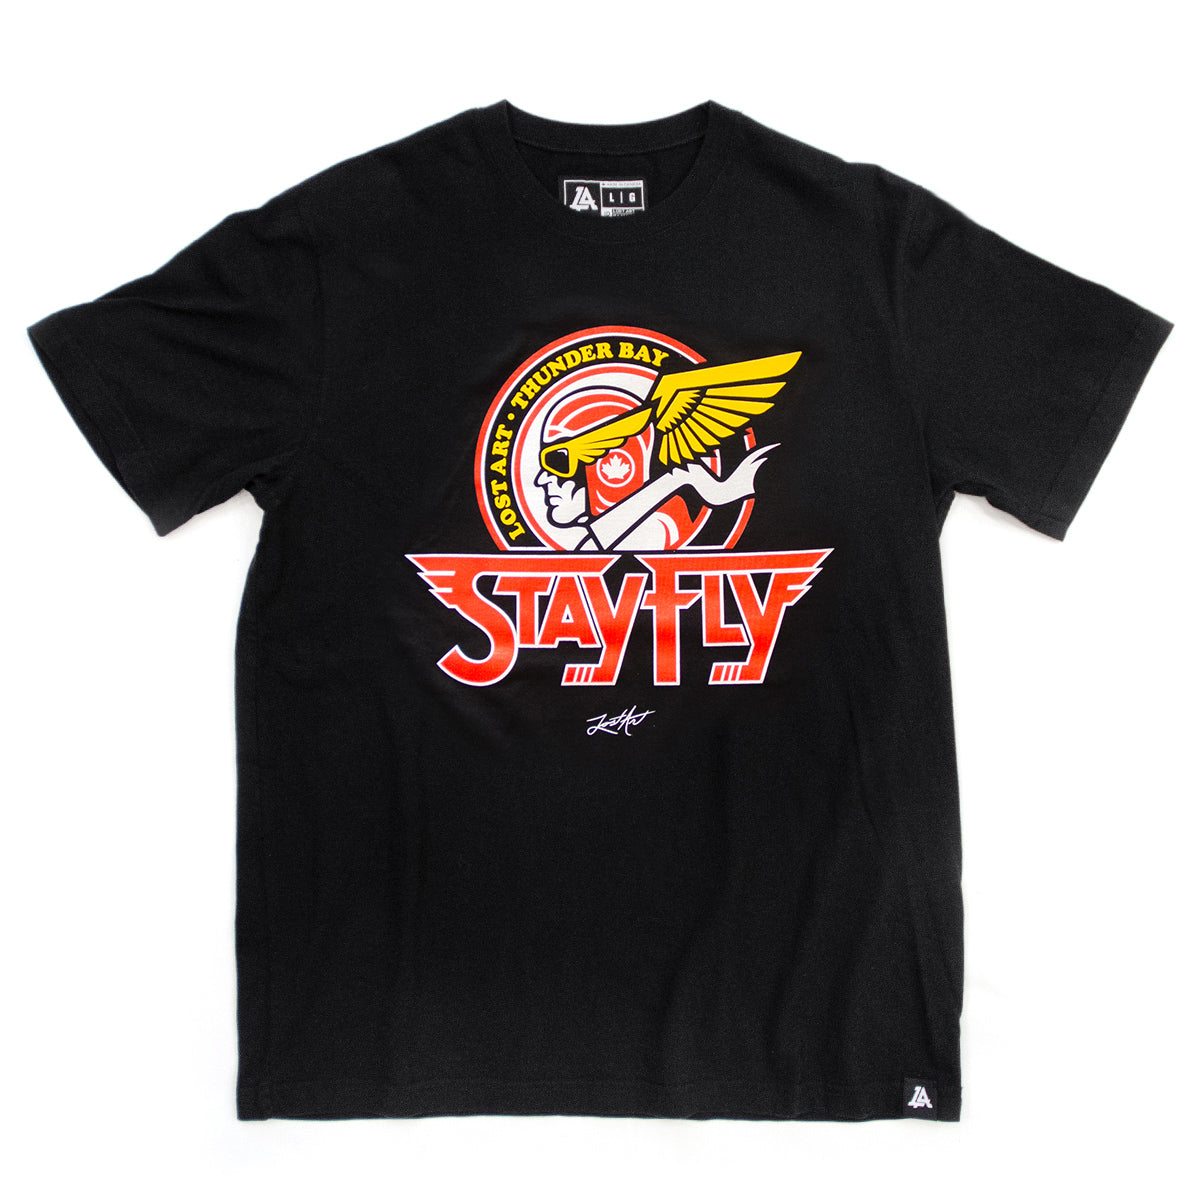 Lost Art Canada - black Thunder Bay flyers logo tee front view